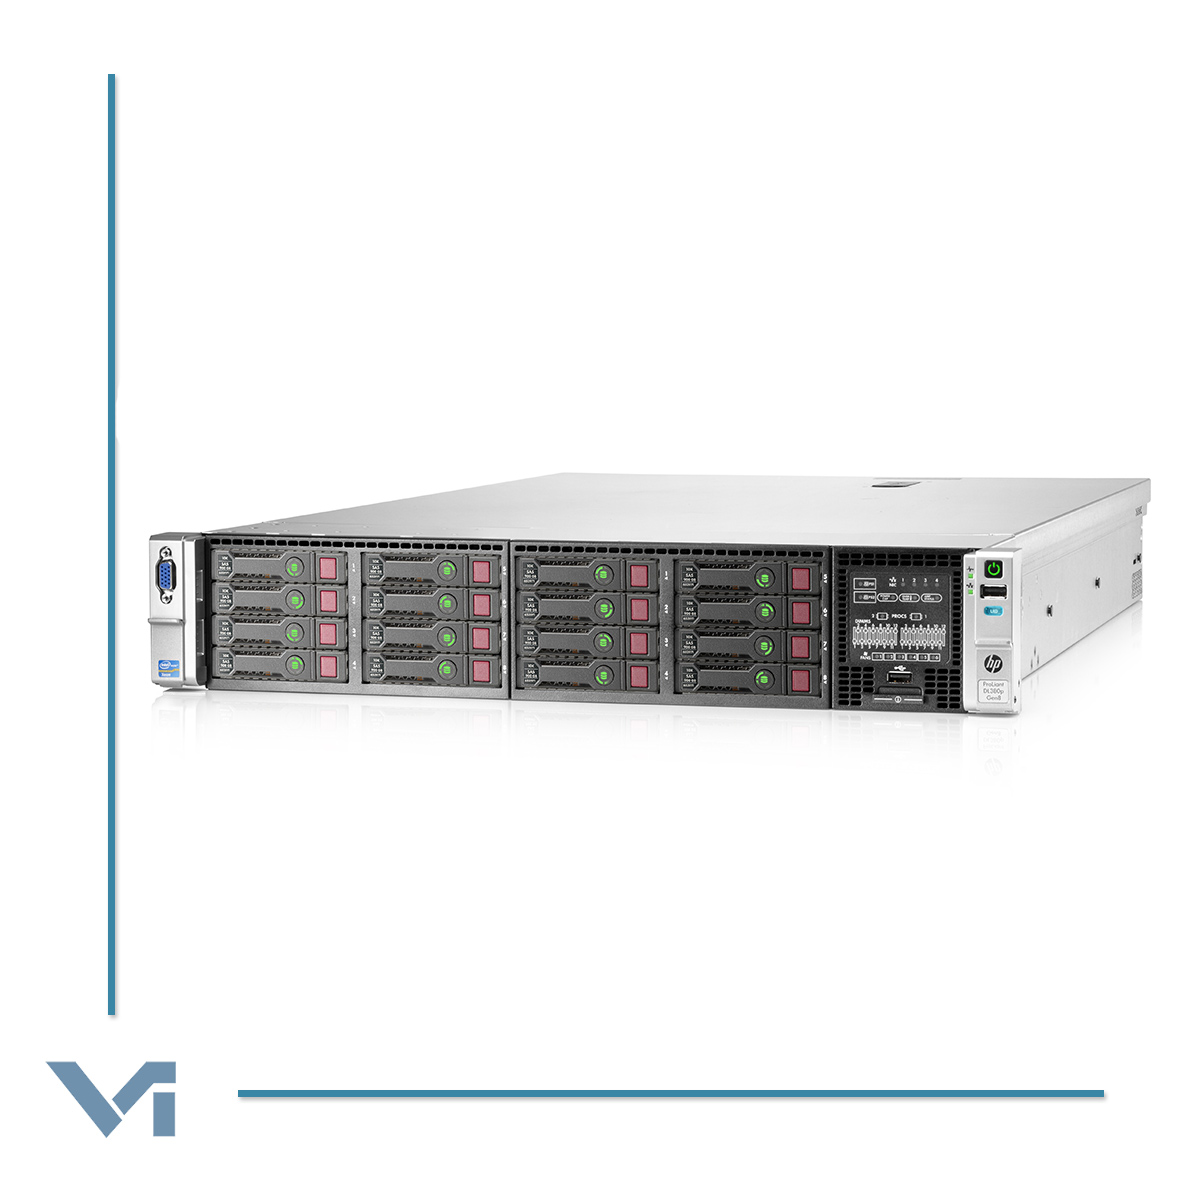 "Server HP PROLIANT DL380 G8 662257-421 - 2 x Intel Xeon E5-2690 384GB Ram 16 x 900 GB SAS 2.5"" 2 x Alim. 2 x Controller P420I -NOCOLOR- Ricondizionato"